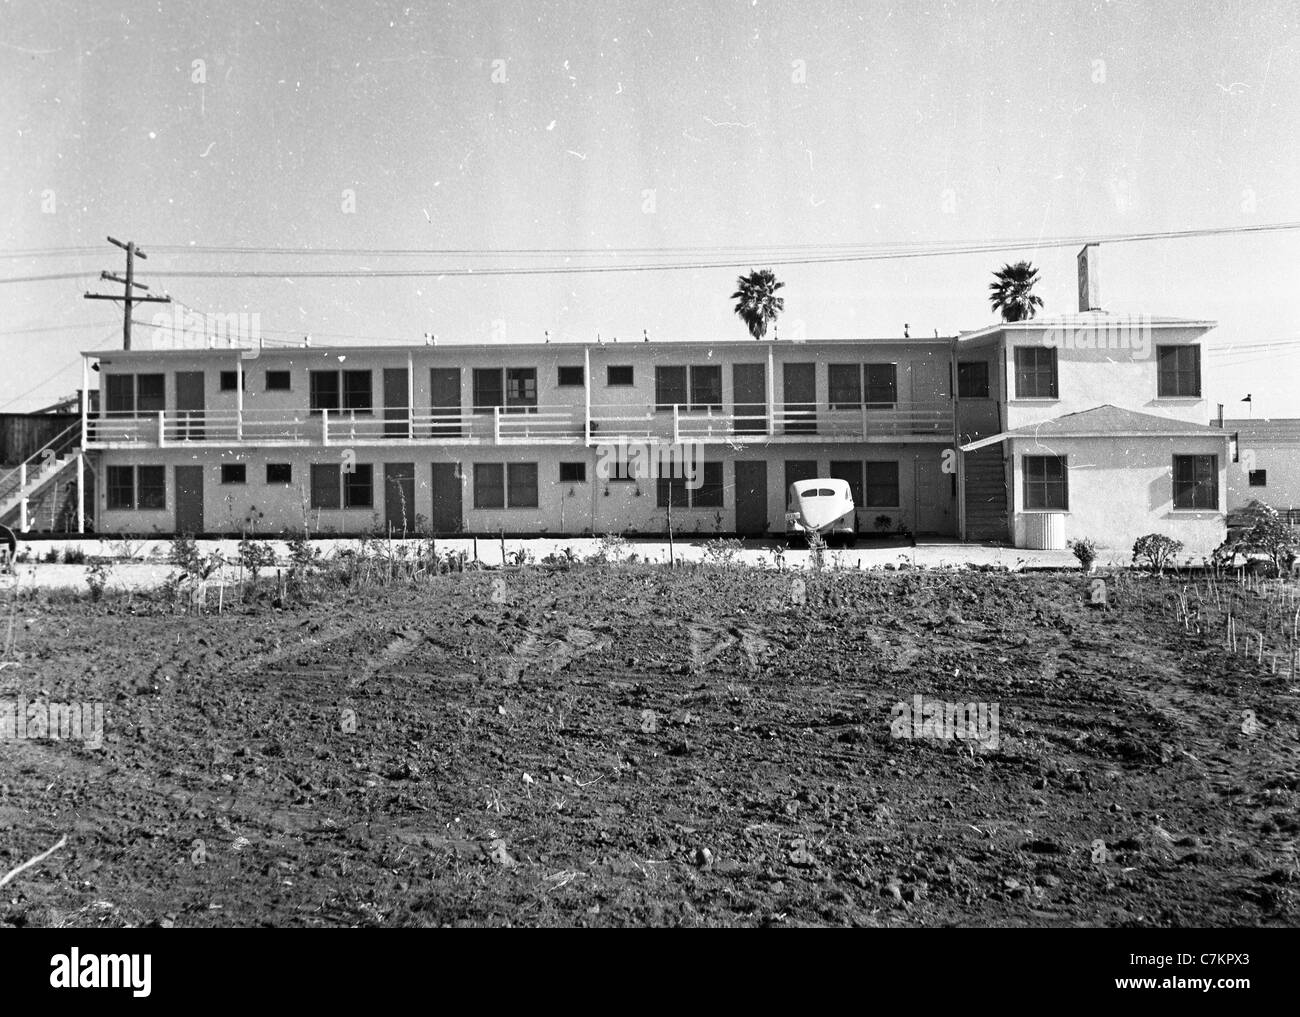 roadside motel two story 1930s southwest united states architecture travel lodging hotel - Stock Image